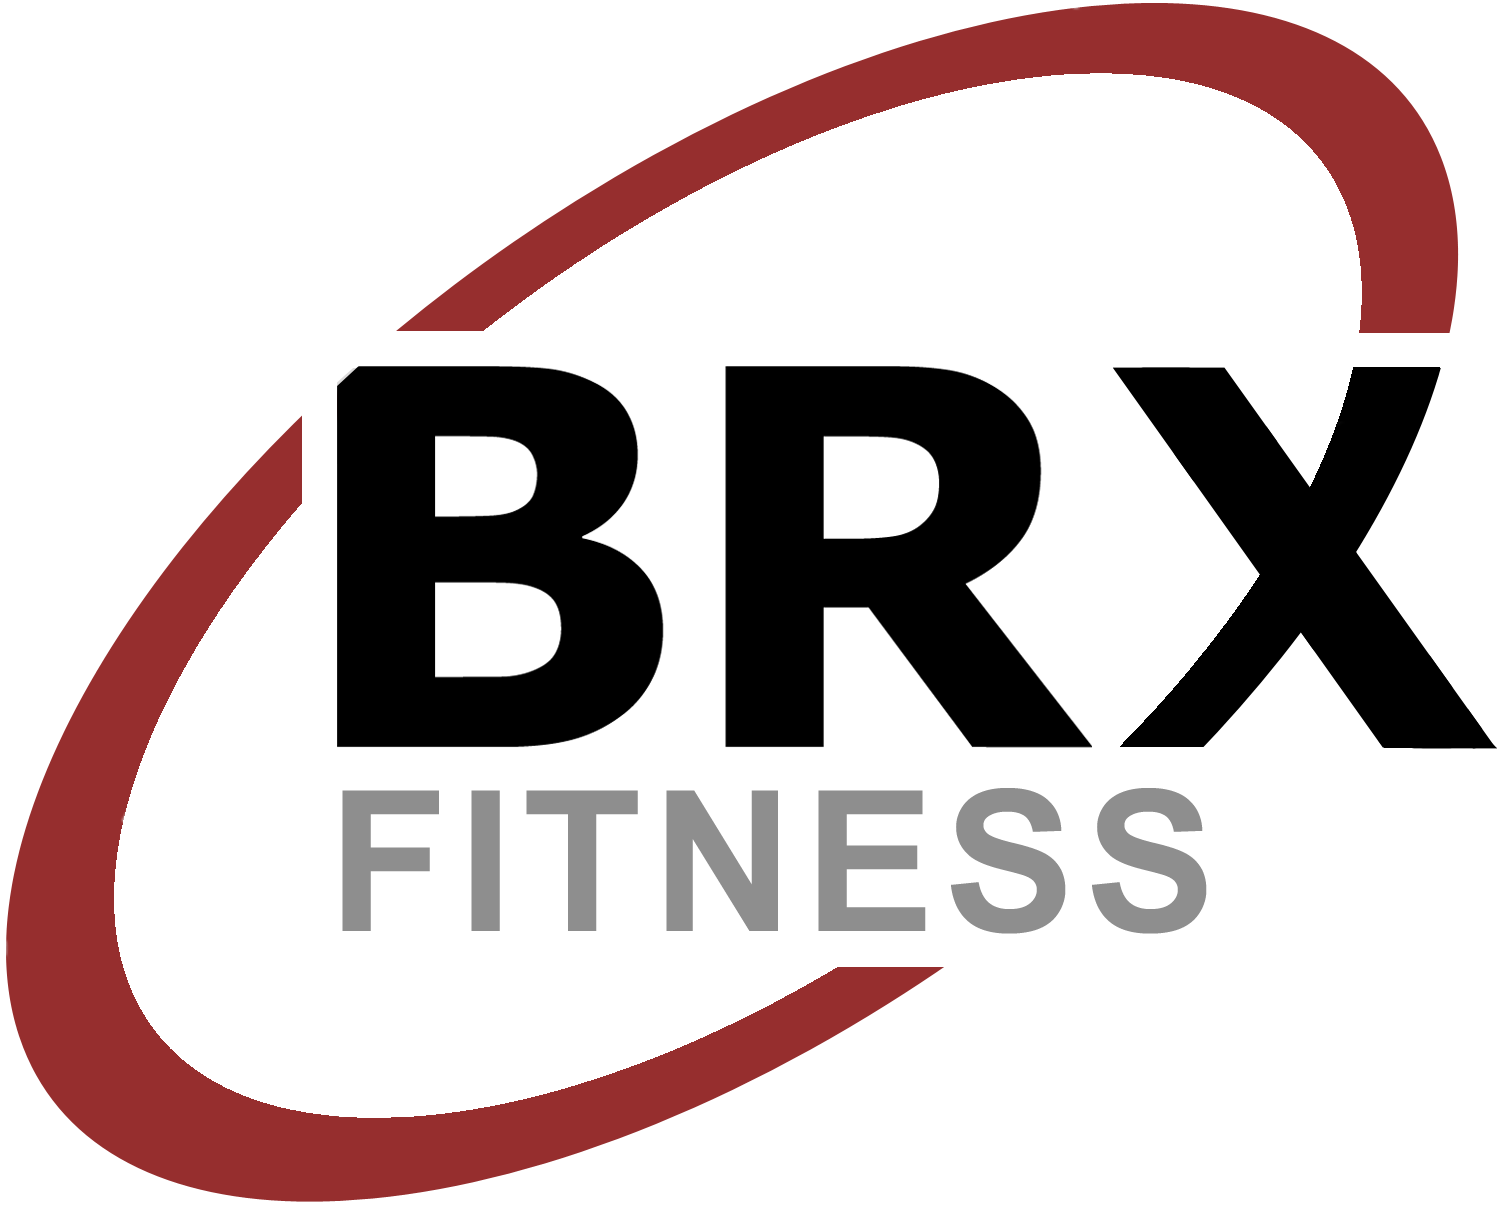 Weight clipart fitness class. Group classes brx